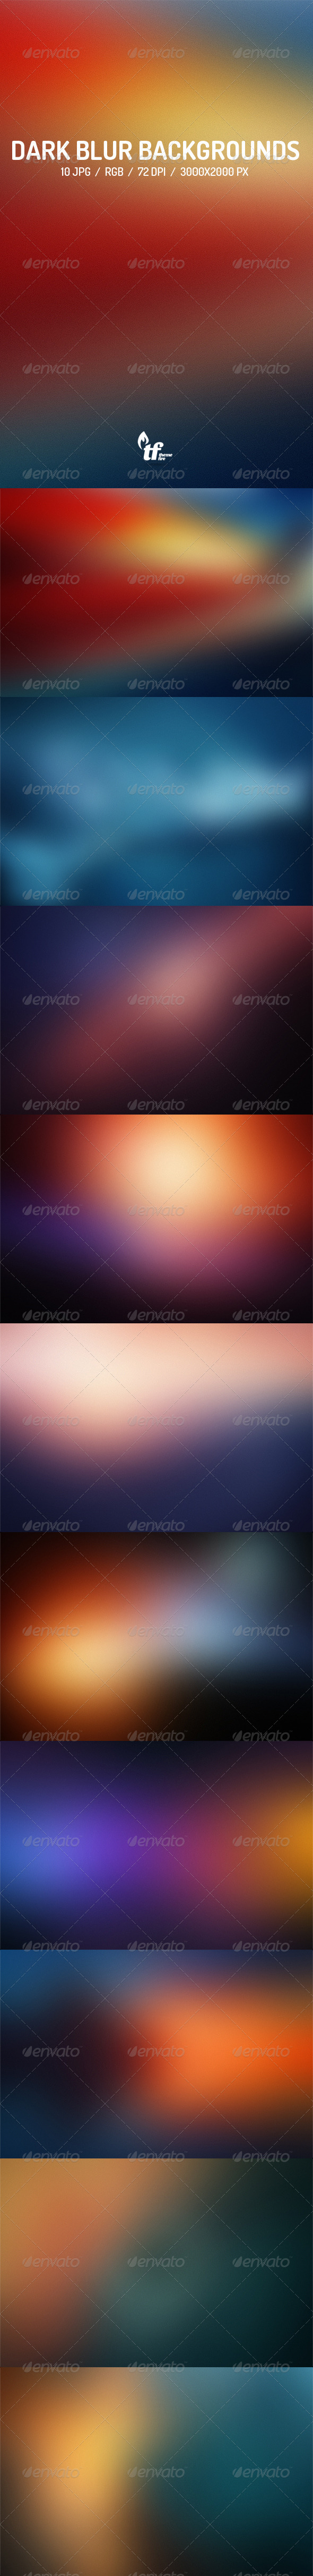 GraphicRiver Dark Blurred Backgrounds 7738390